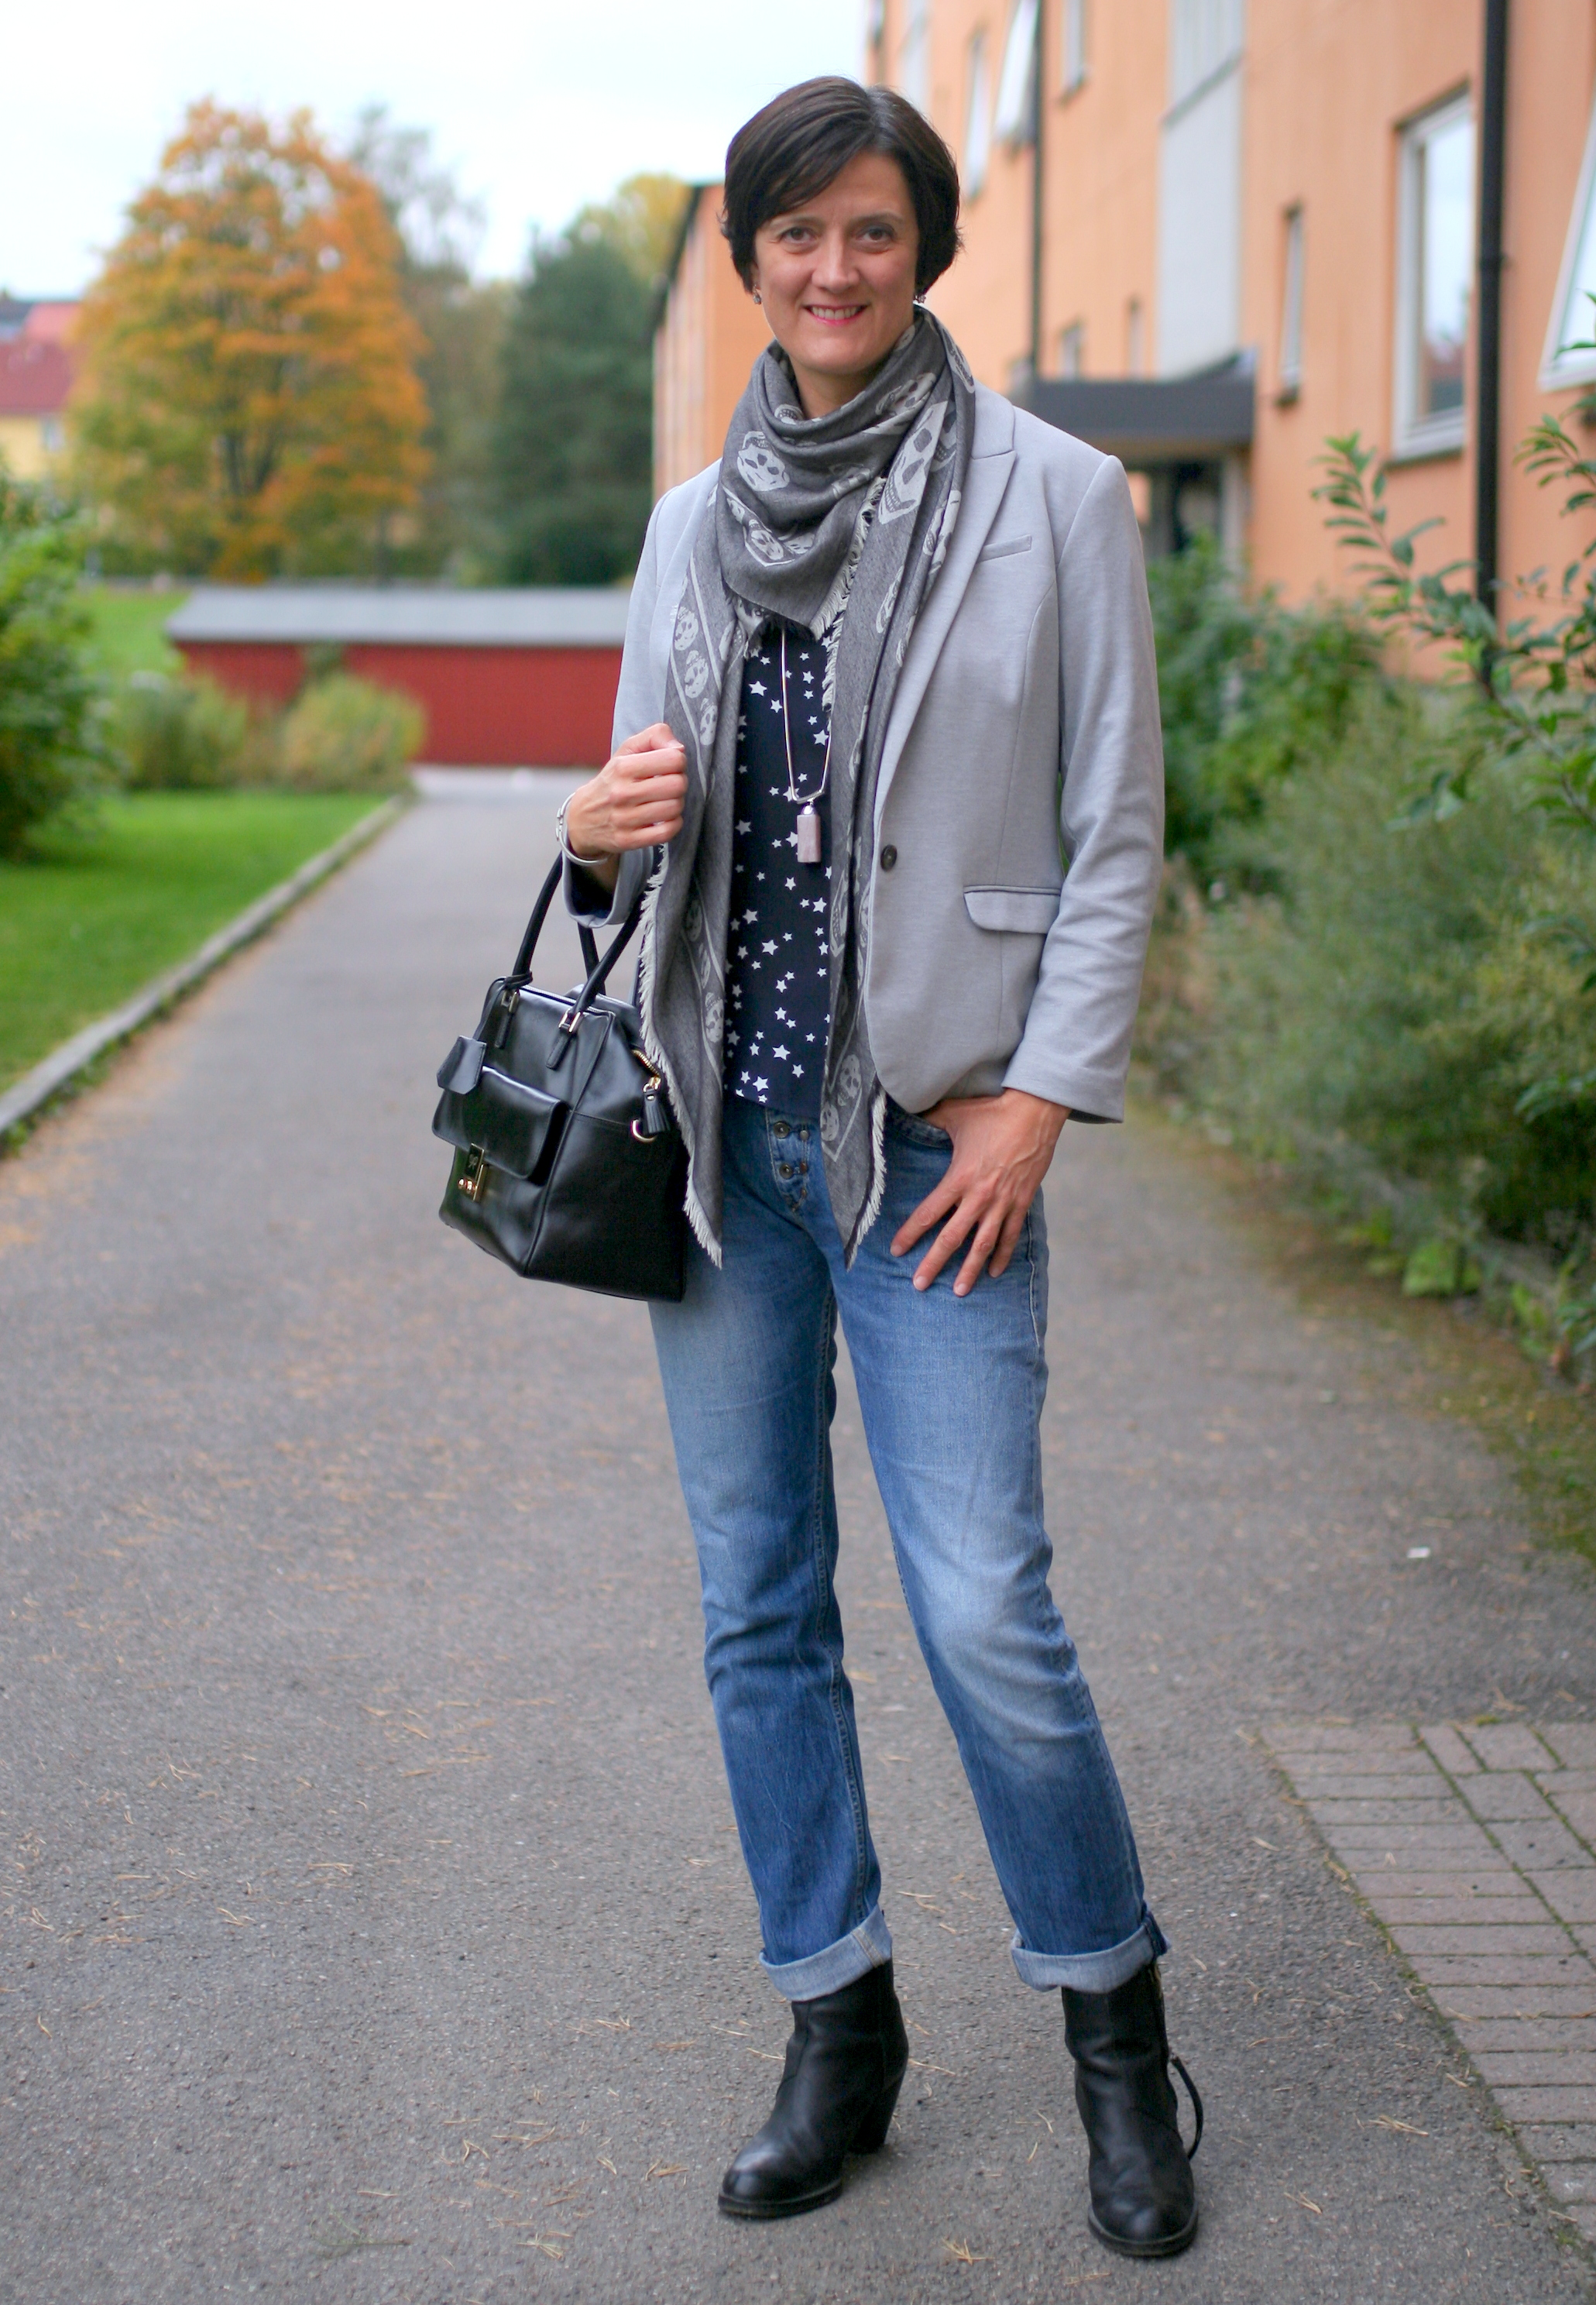 Tall Girl's Fashion // Look smart in jeans and blazer